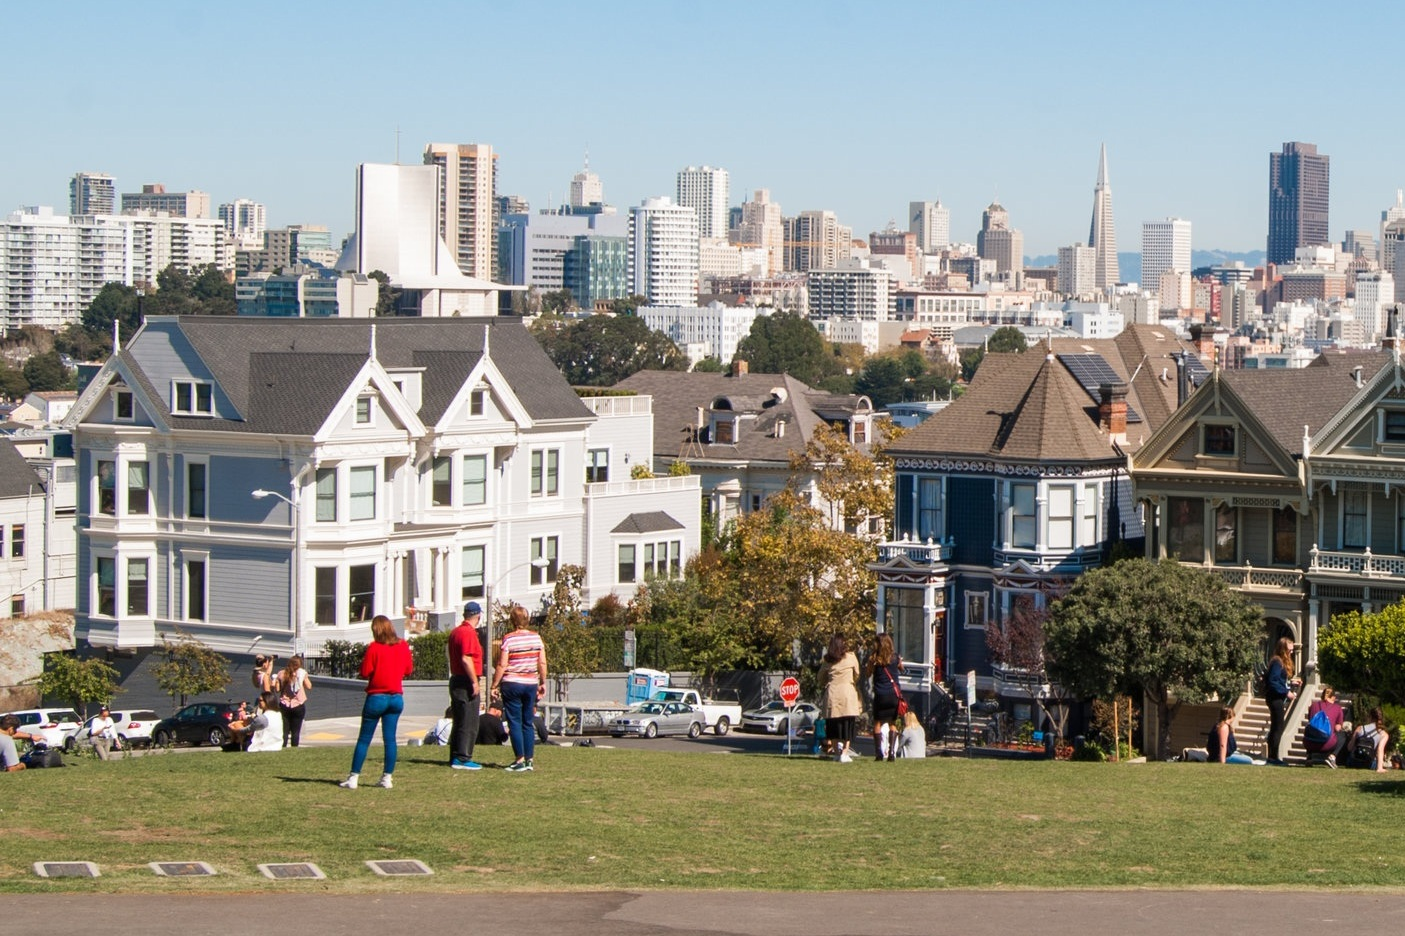 Real Estate - You need real estate expertise to determine what makes a good Adult Family Home. What is the market demand in a neighborhood? What are the determining factors for high rentals?